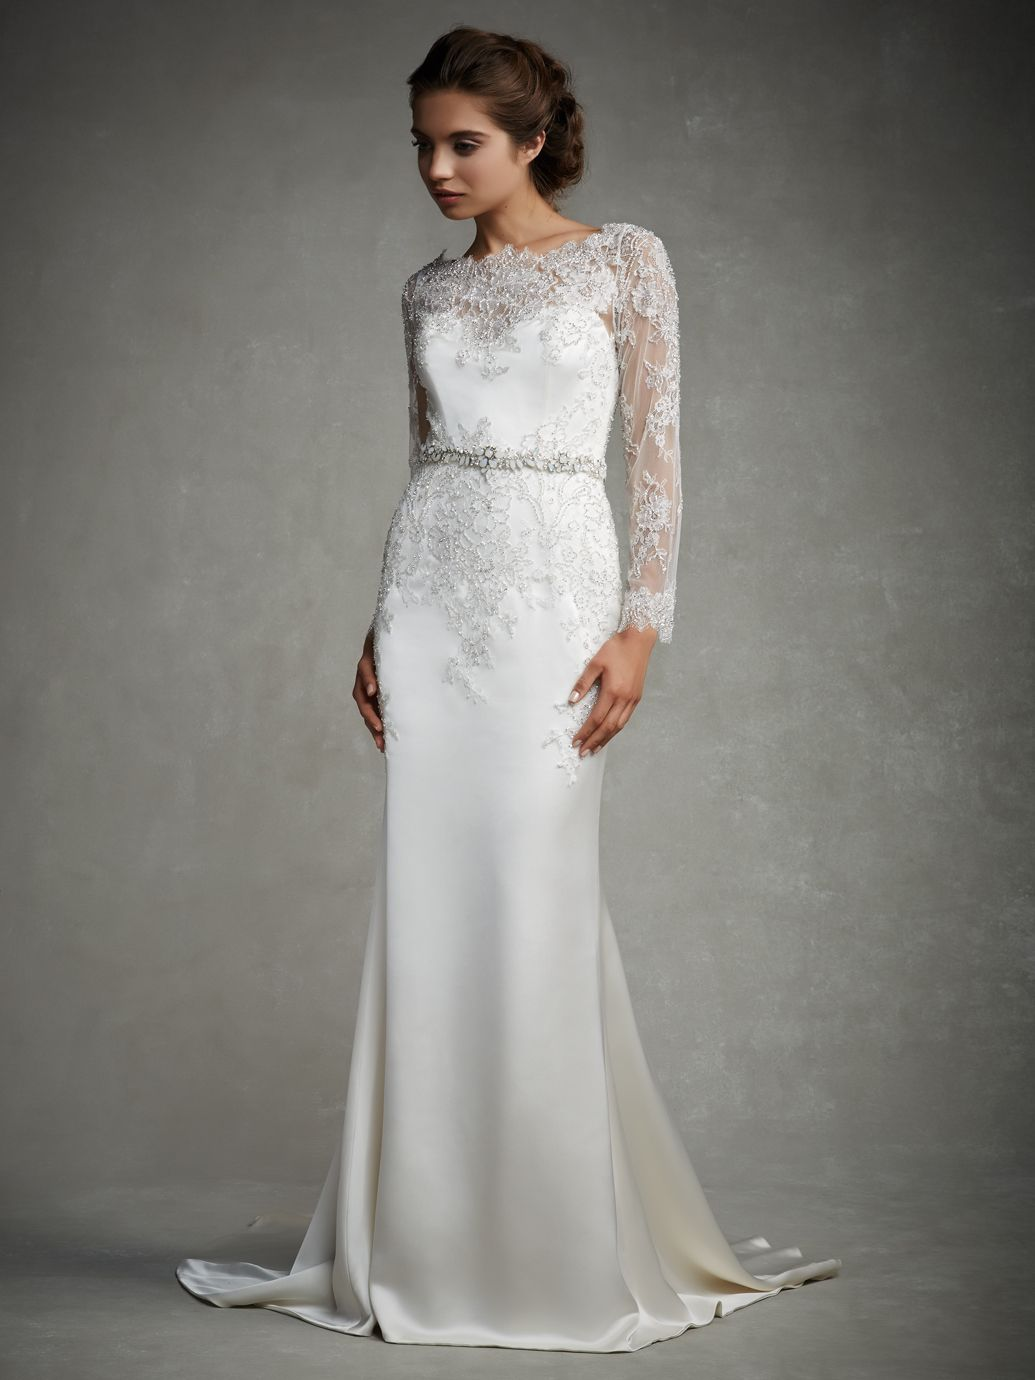 30 exquisite elegant long sleeved wedding dresses long sleeved enzoani jordan bridal gown a timeless sophisticated off the shoulder long sleeved gown with a beautifully beaded bodice over a soft charmeuse sheath ombrellifo Image collections